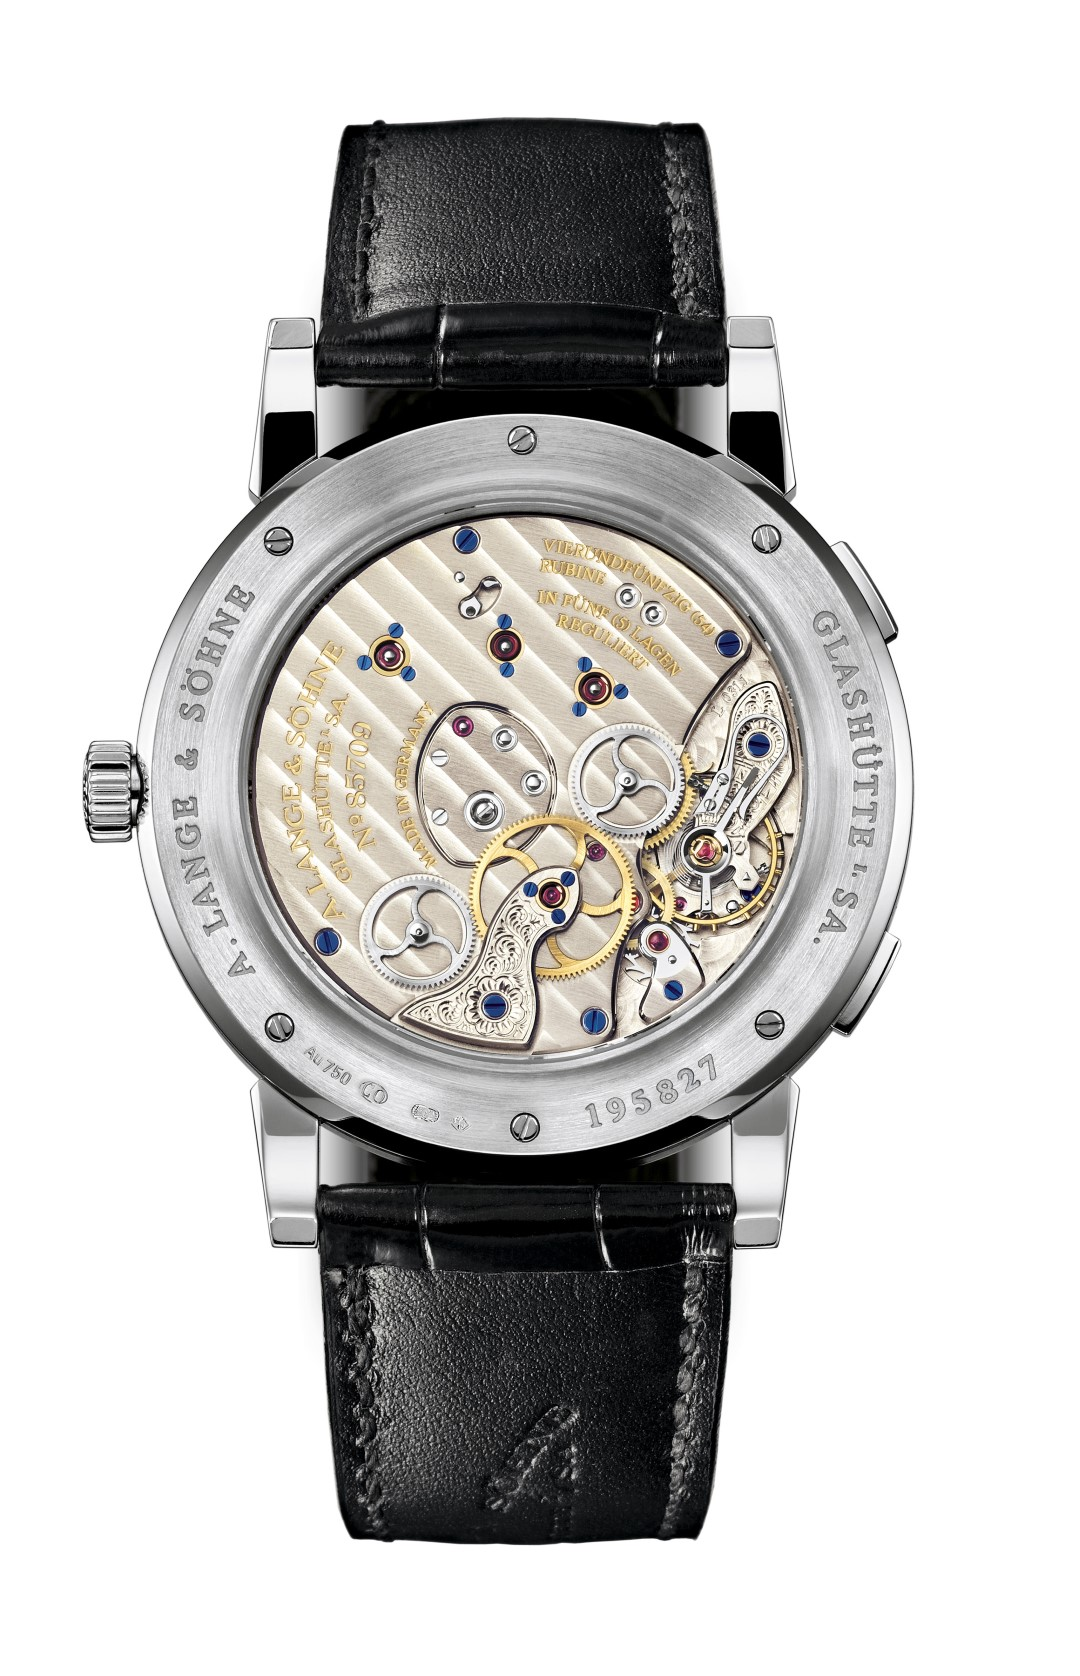 Lange 1 Time Zone reverso